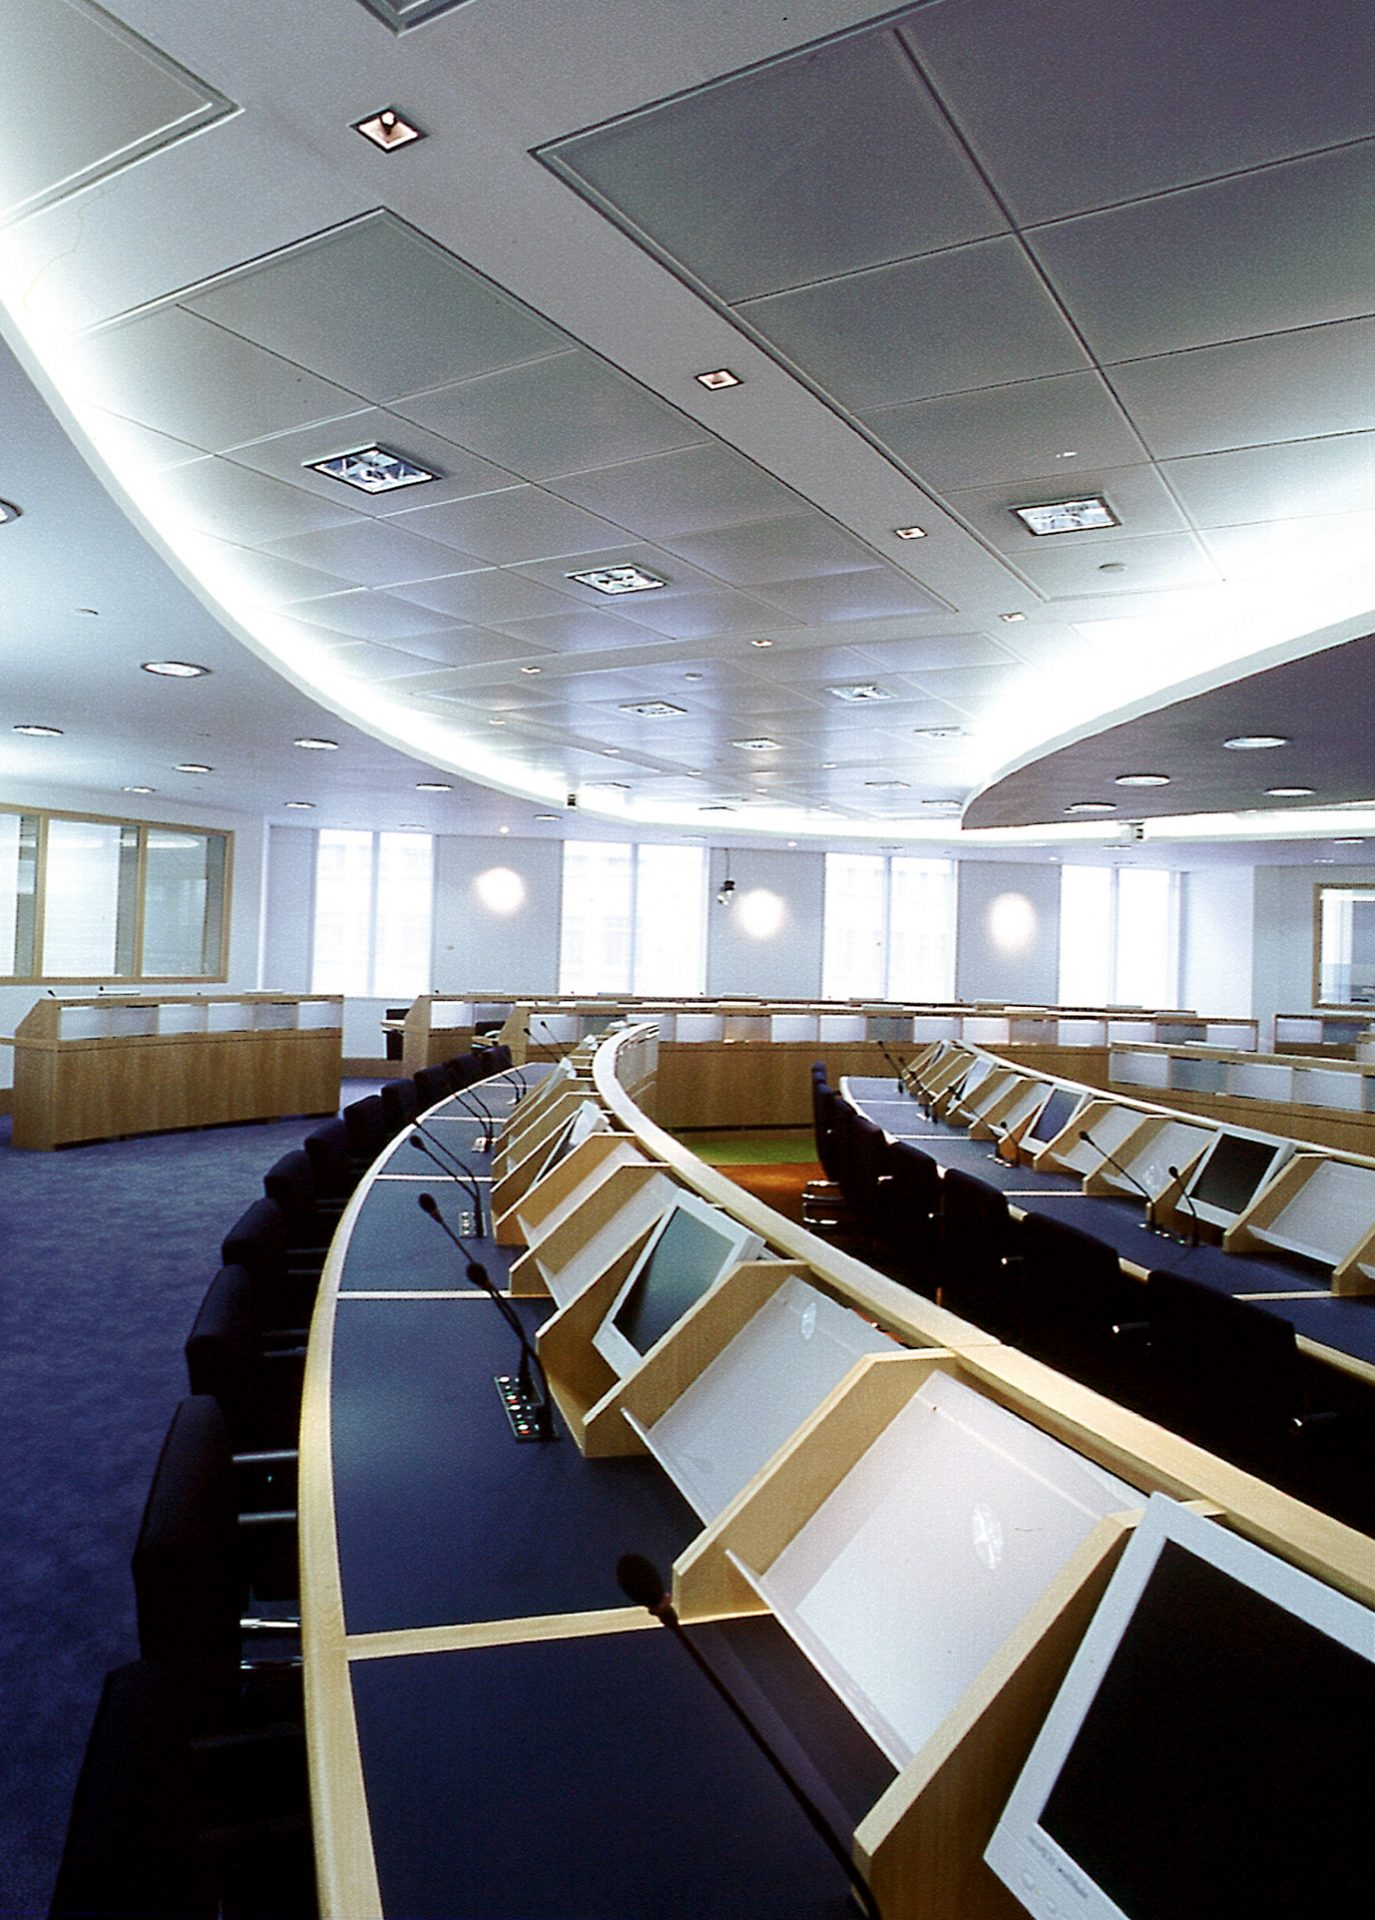 EMEA Canary Wharf Conference Centre Desks